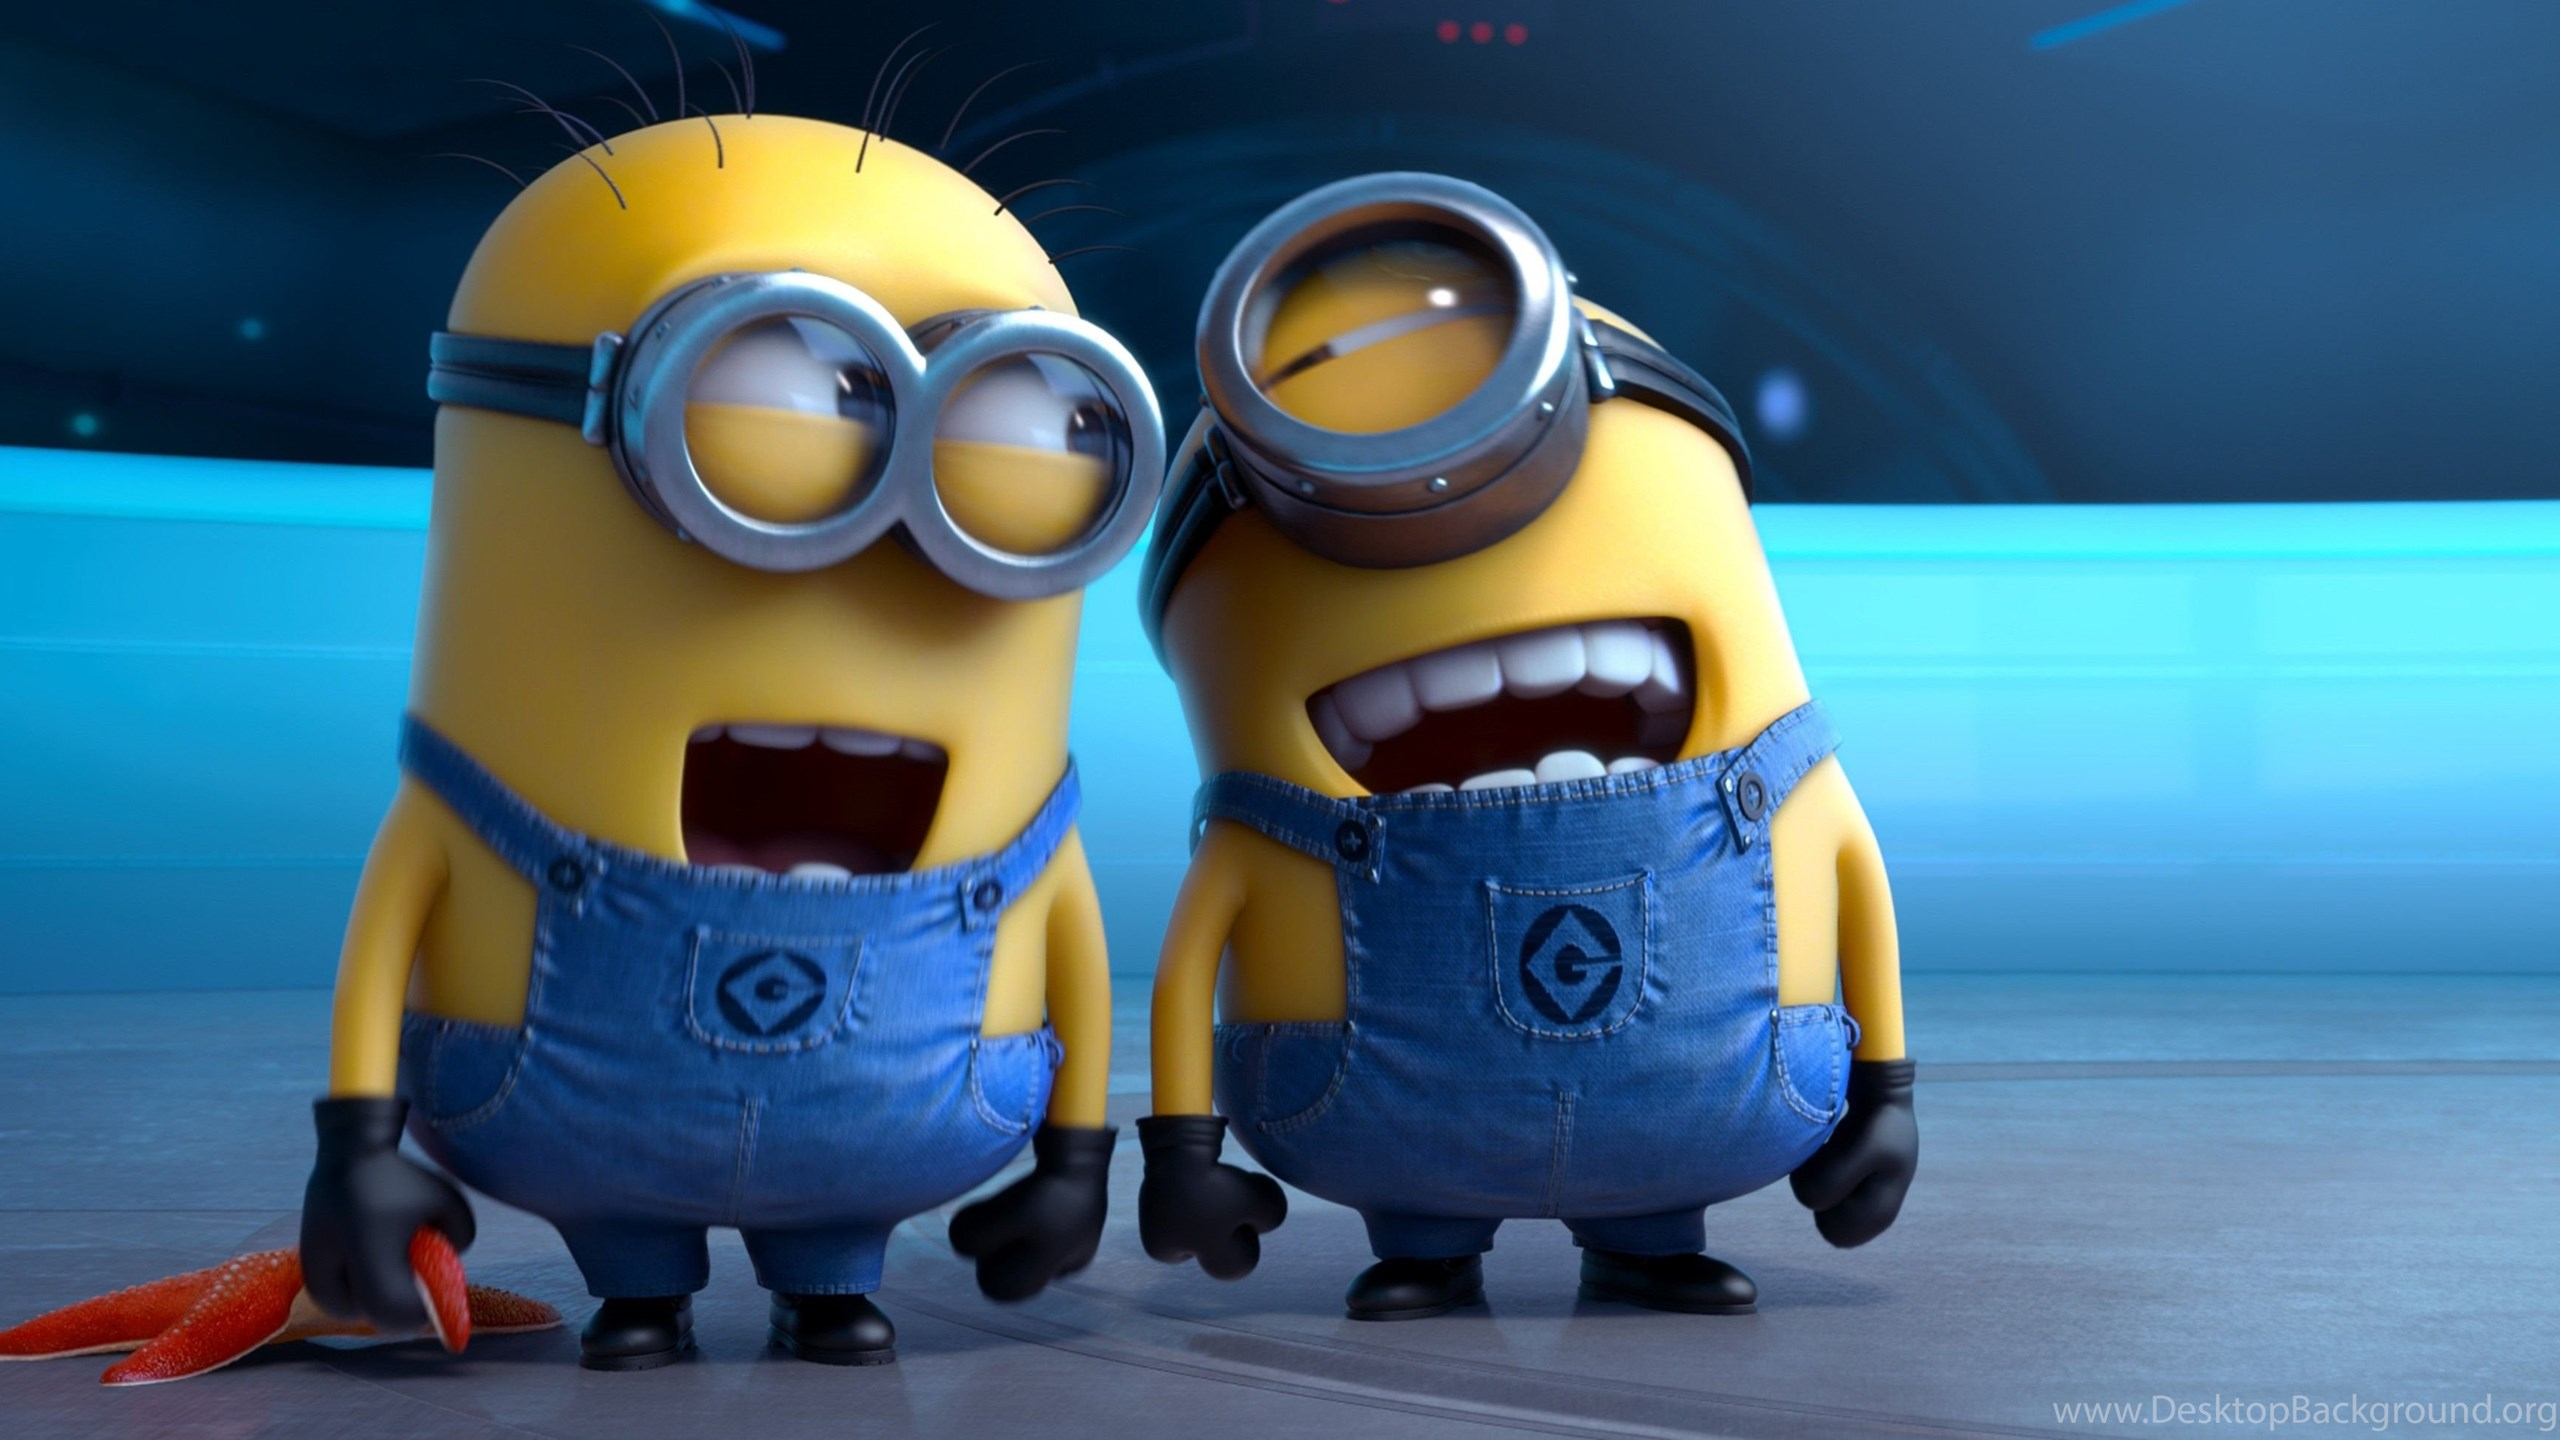 Minion Of Despicable Me Wallpapers Hq Photos Desktop Background